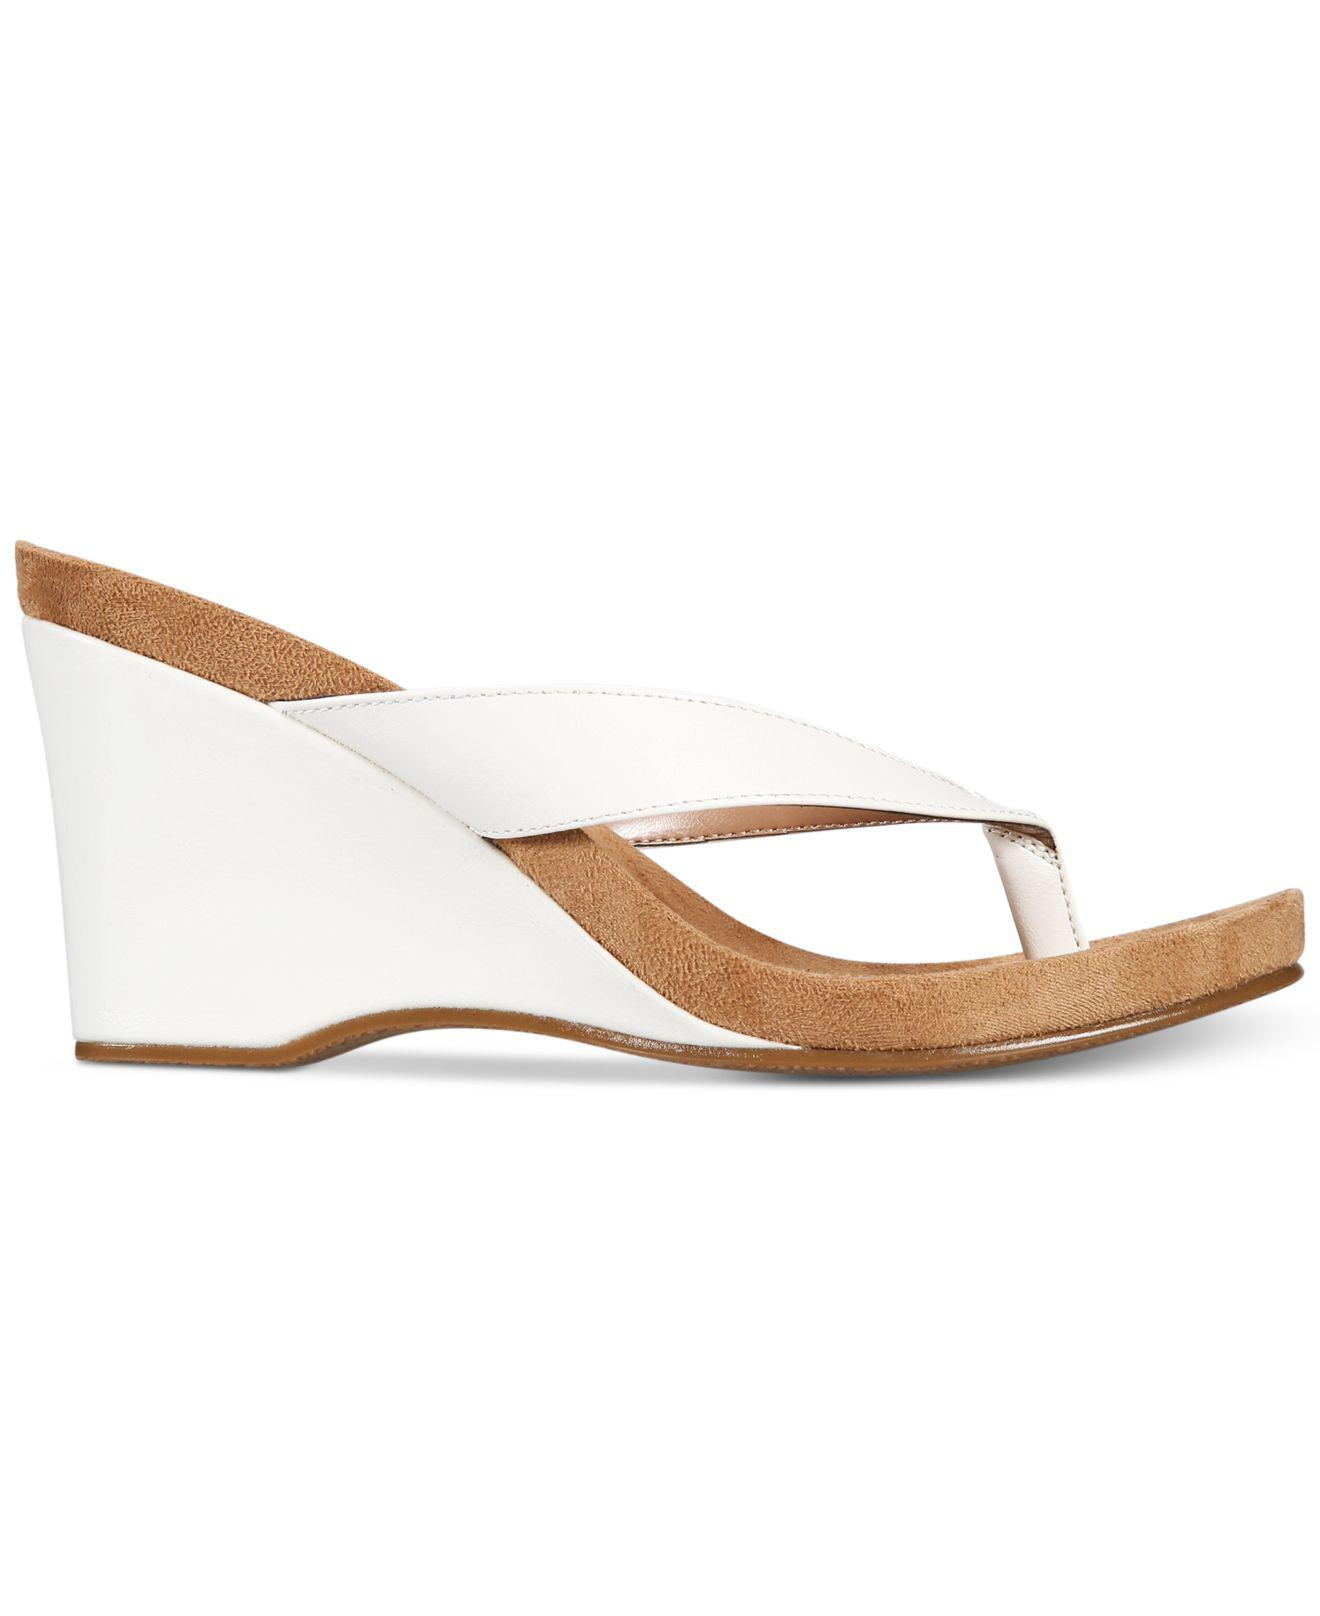 b91684ef8ba22 Lyst - Style   Co. Chicklet Wedge Sandals in White - Save 54%